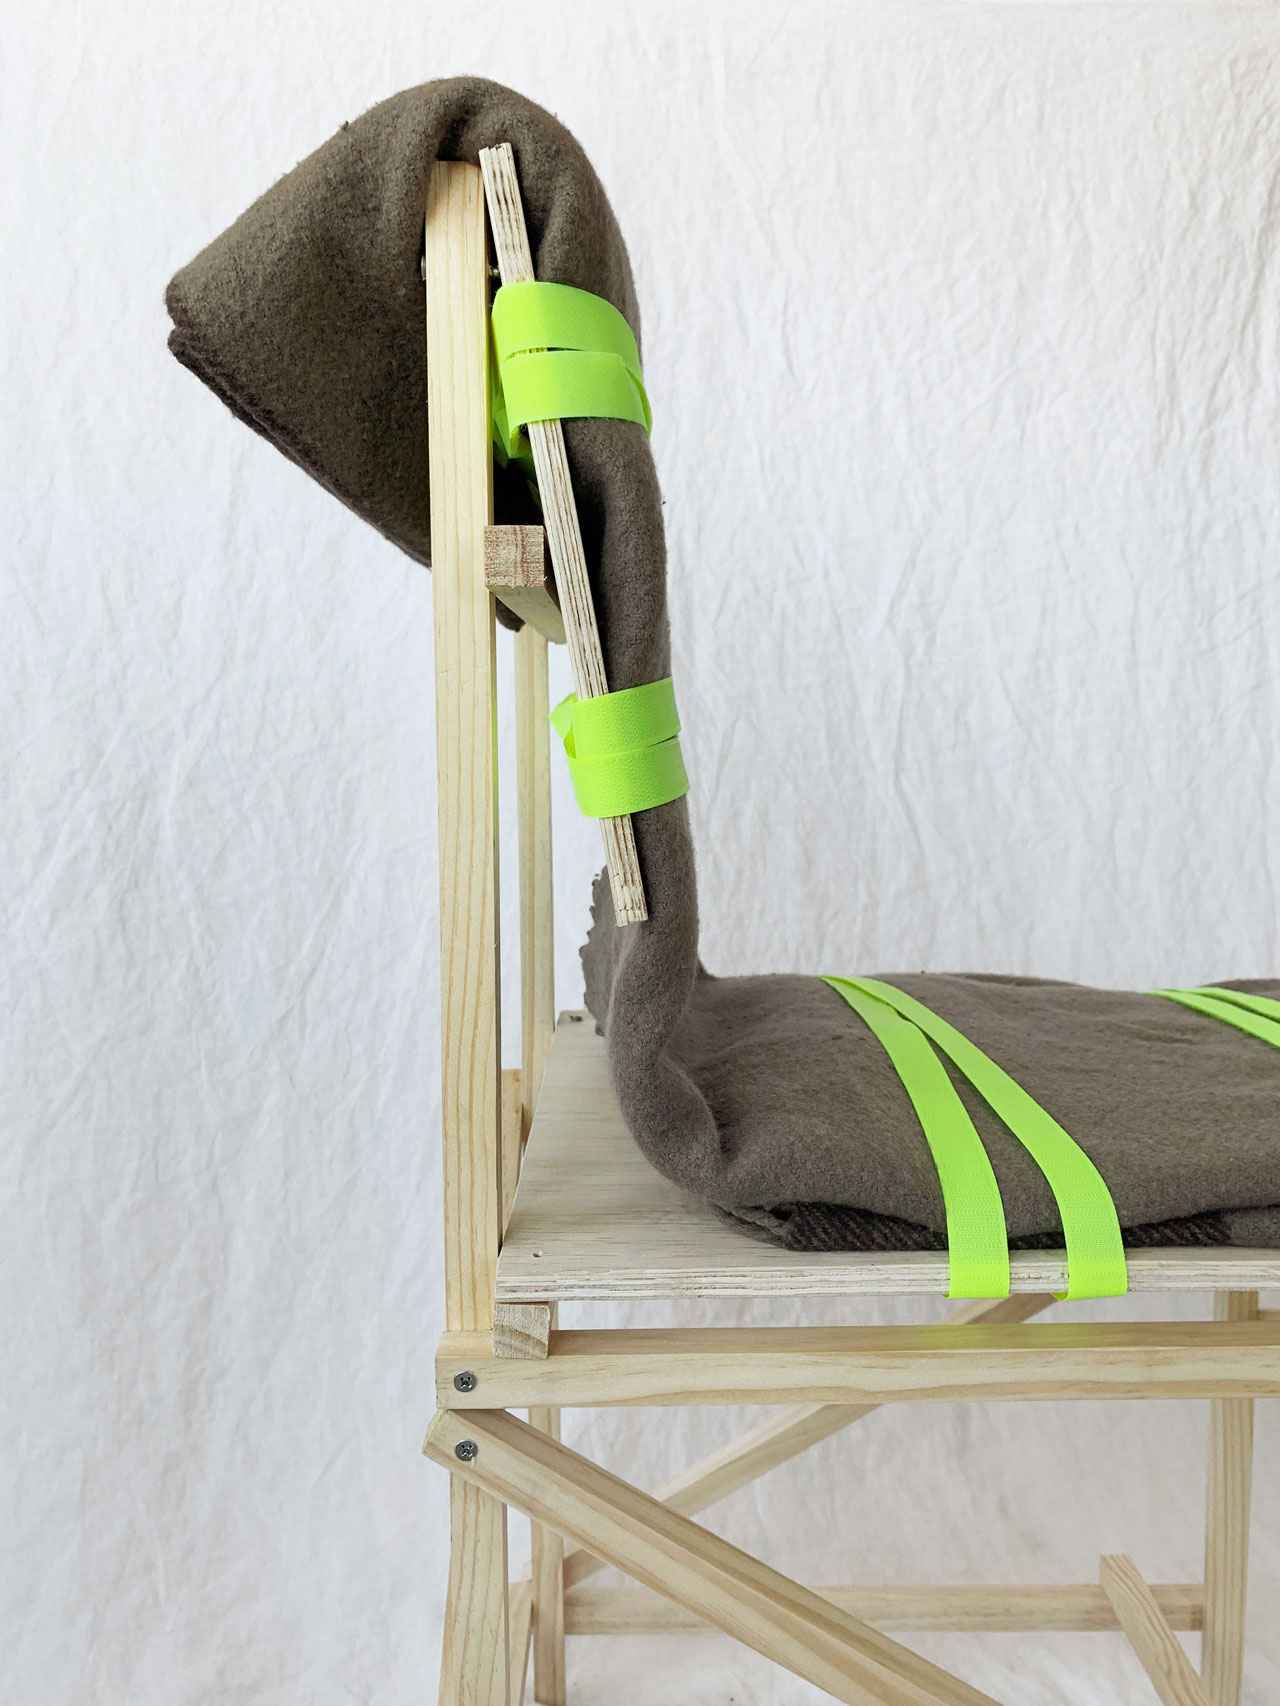 Rough And Ready Chair by Tord Boontje